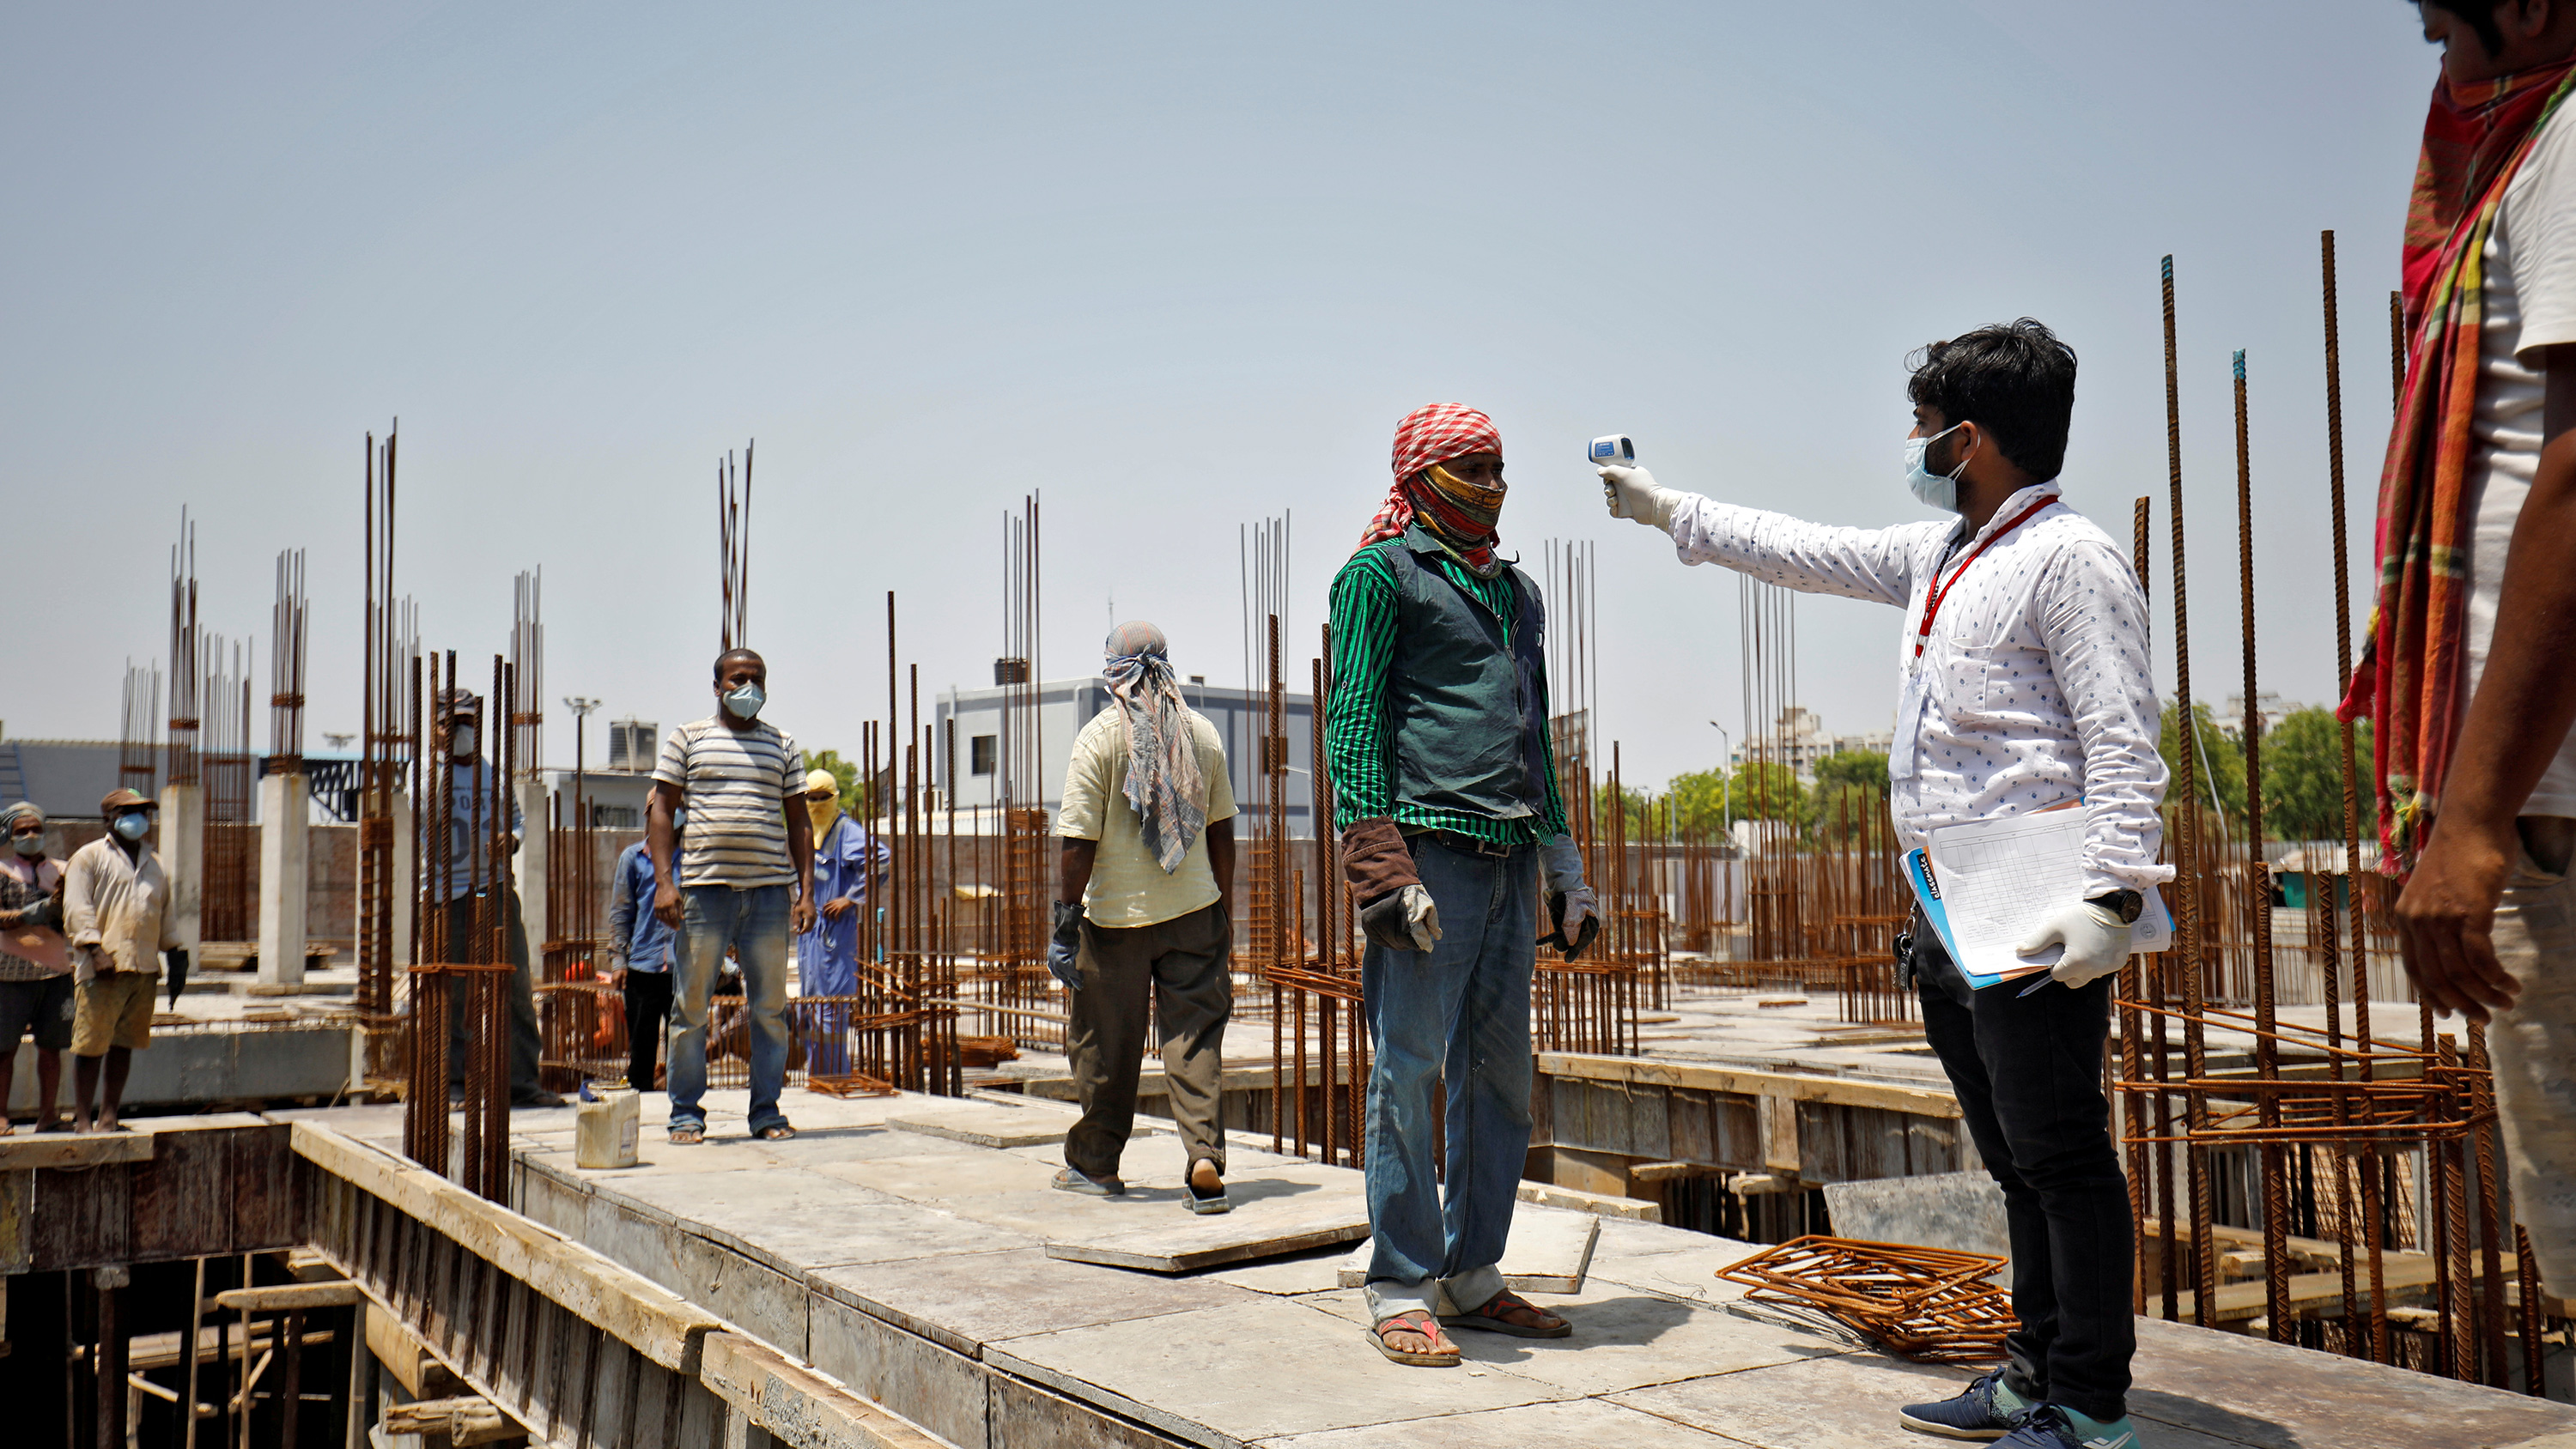 The photo shows the health worker aiming a temperature sensor at the forehead of a construction worker on site at a dig.